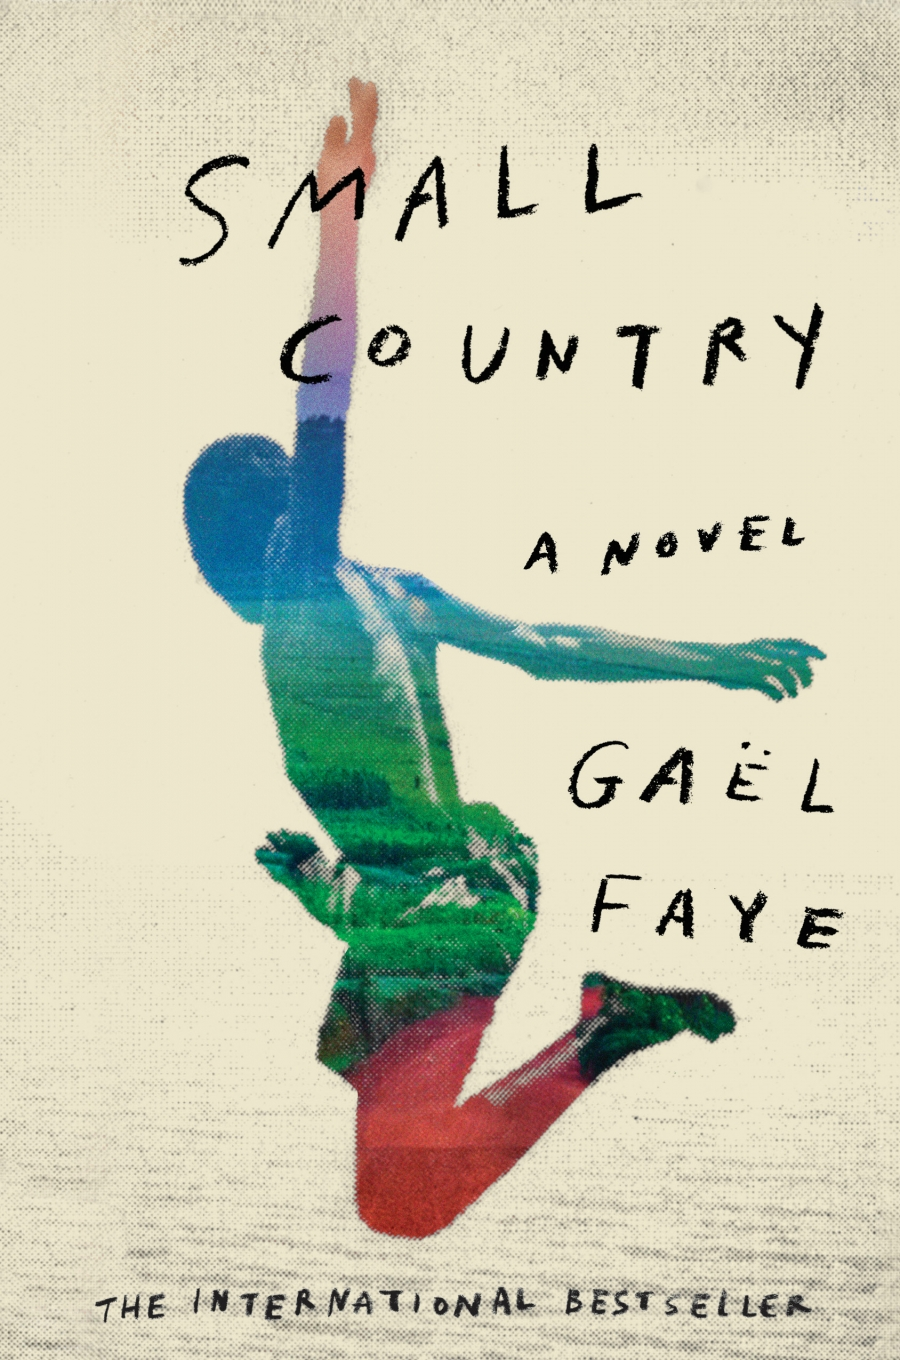 The cover of the novel 'Small Country,' which shows a boyish figure in blue, green and red leaping into the air with arms outstretched.